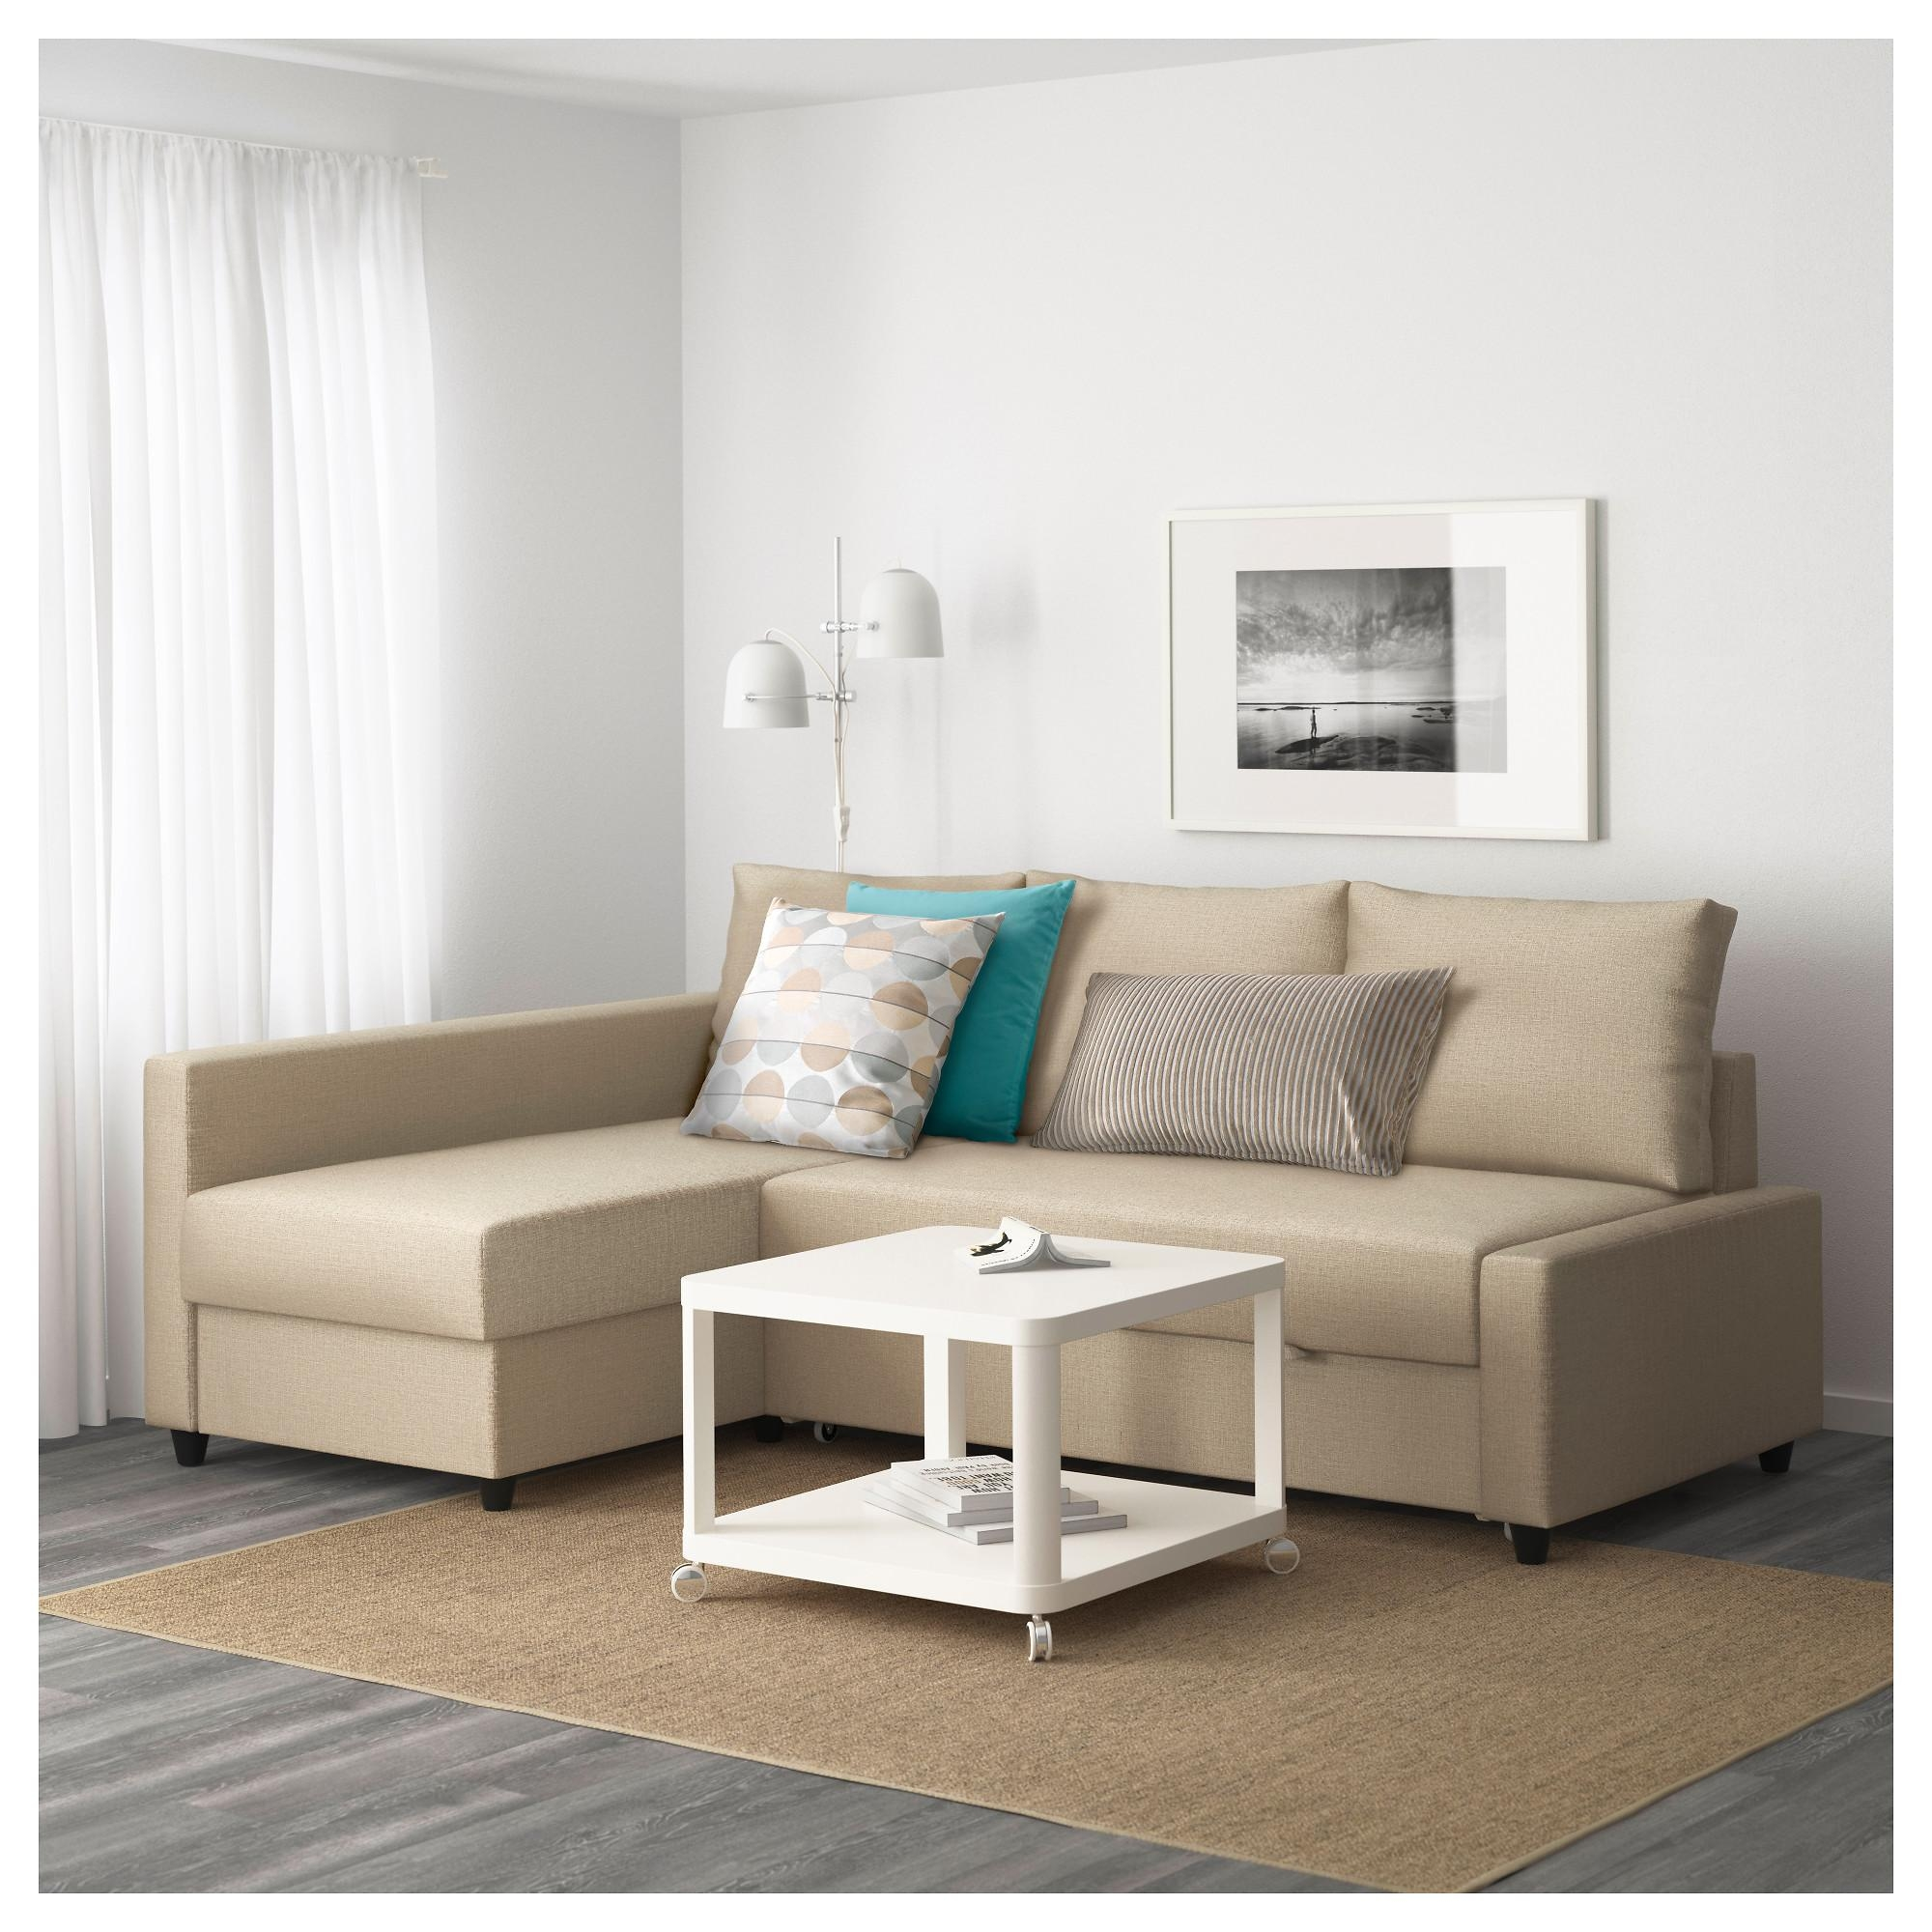 Friheten Corner Sofa Bed With Storage Skiftebo Beige – Ikea With Storage Sofas Ikea (View 12 of 20)